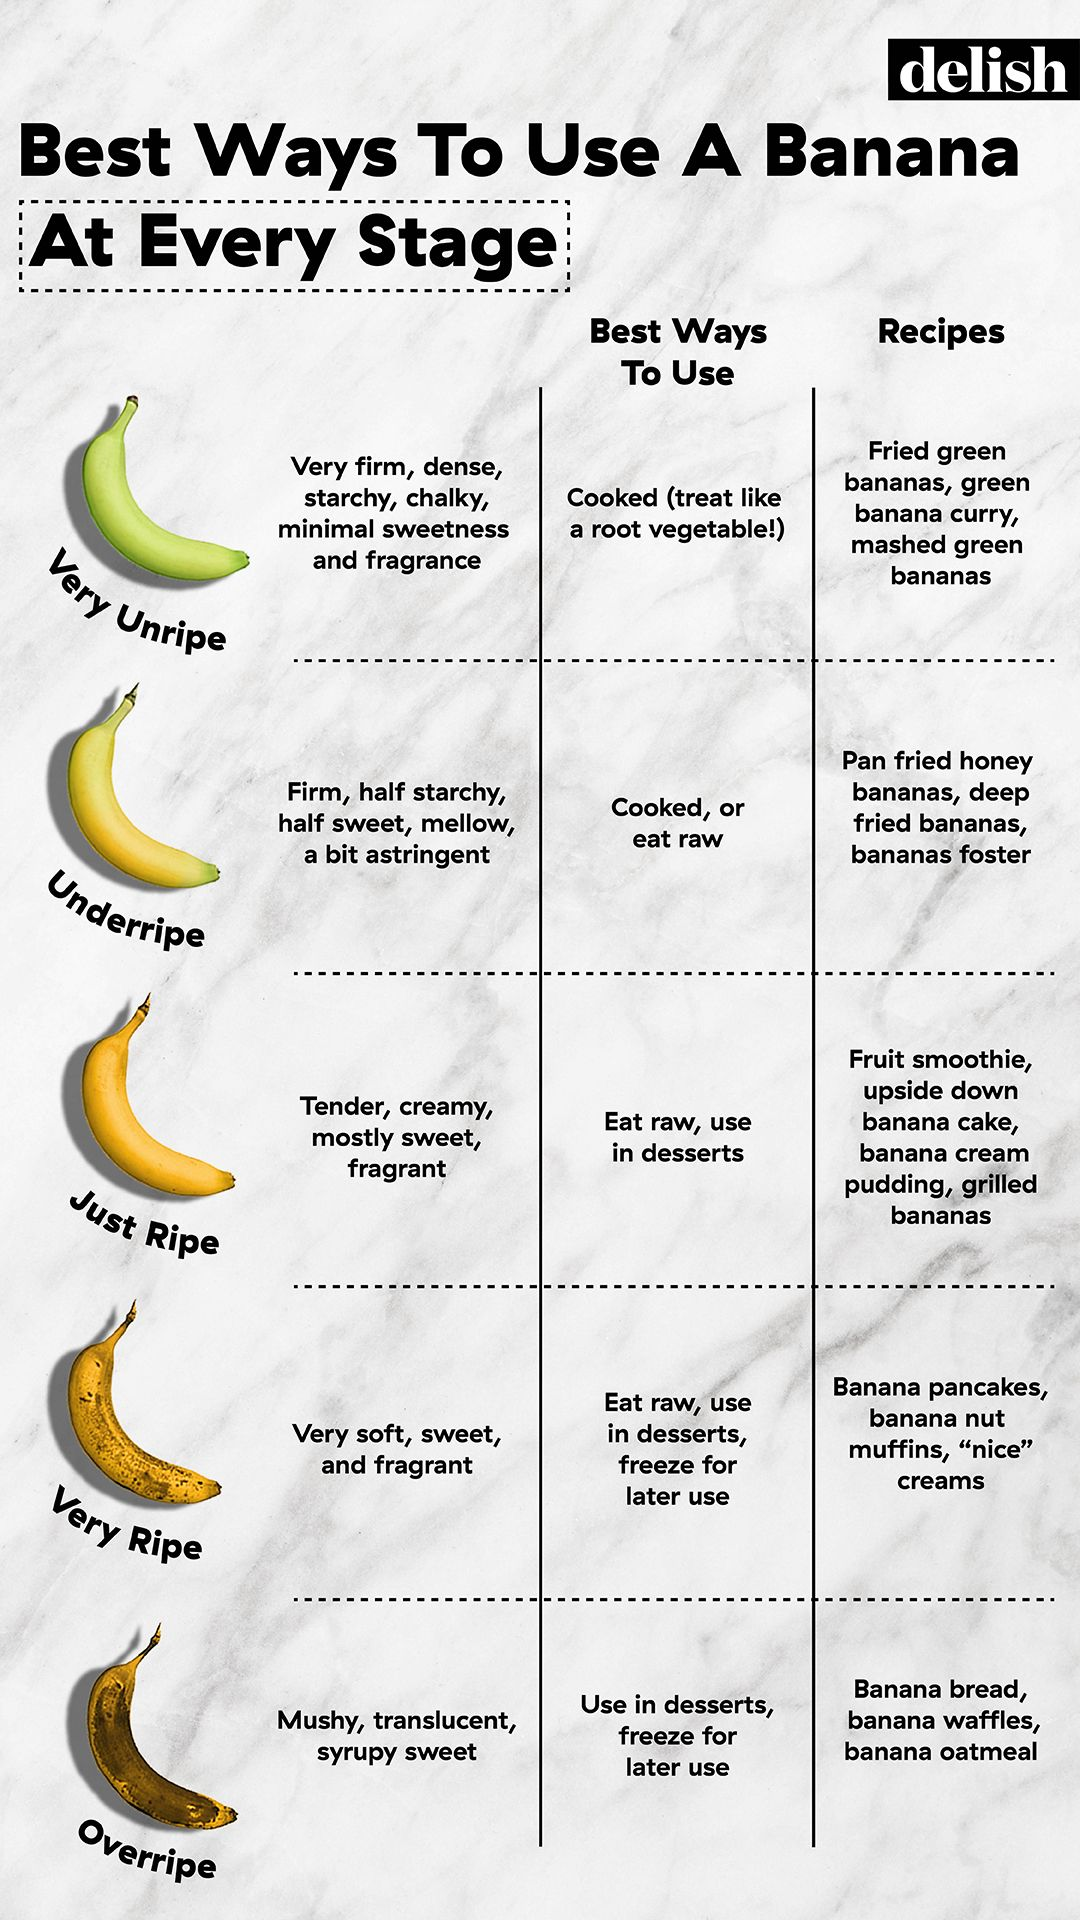 The Best Ways To Use a Banana (At Every Stage)